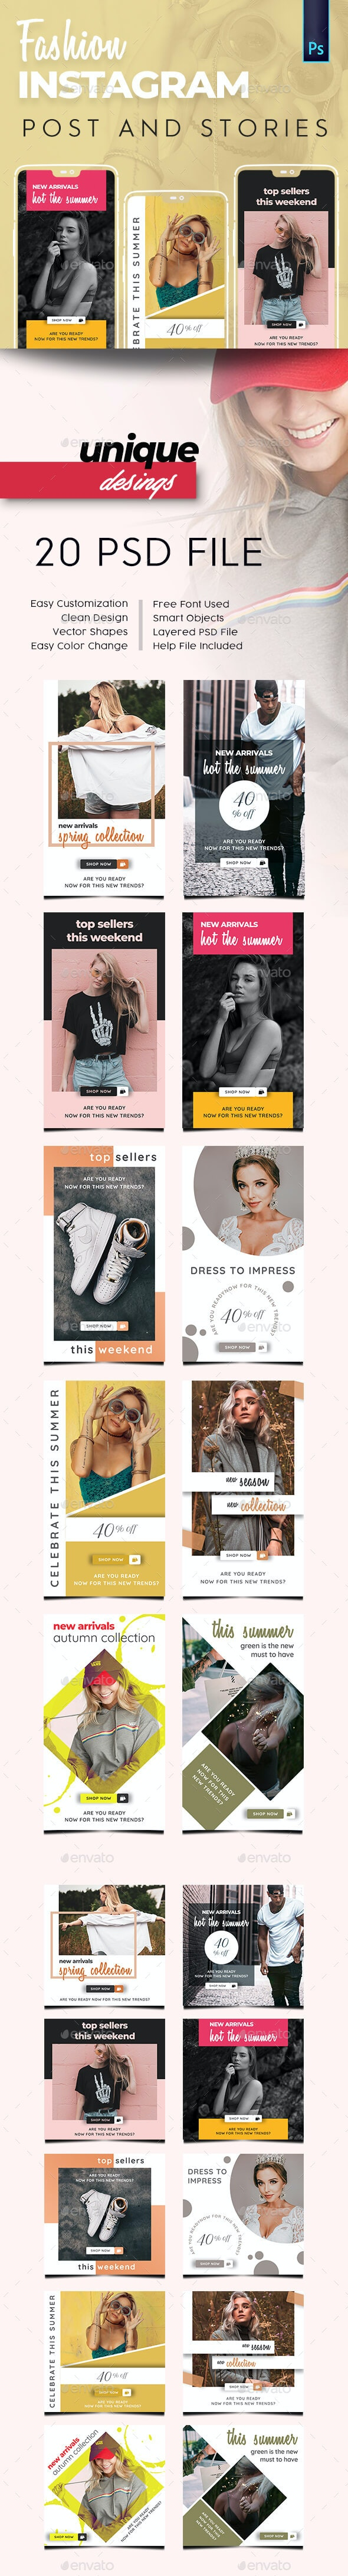 Fashion Instagram Post and Stories - Social Media Web Elements